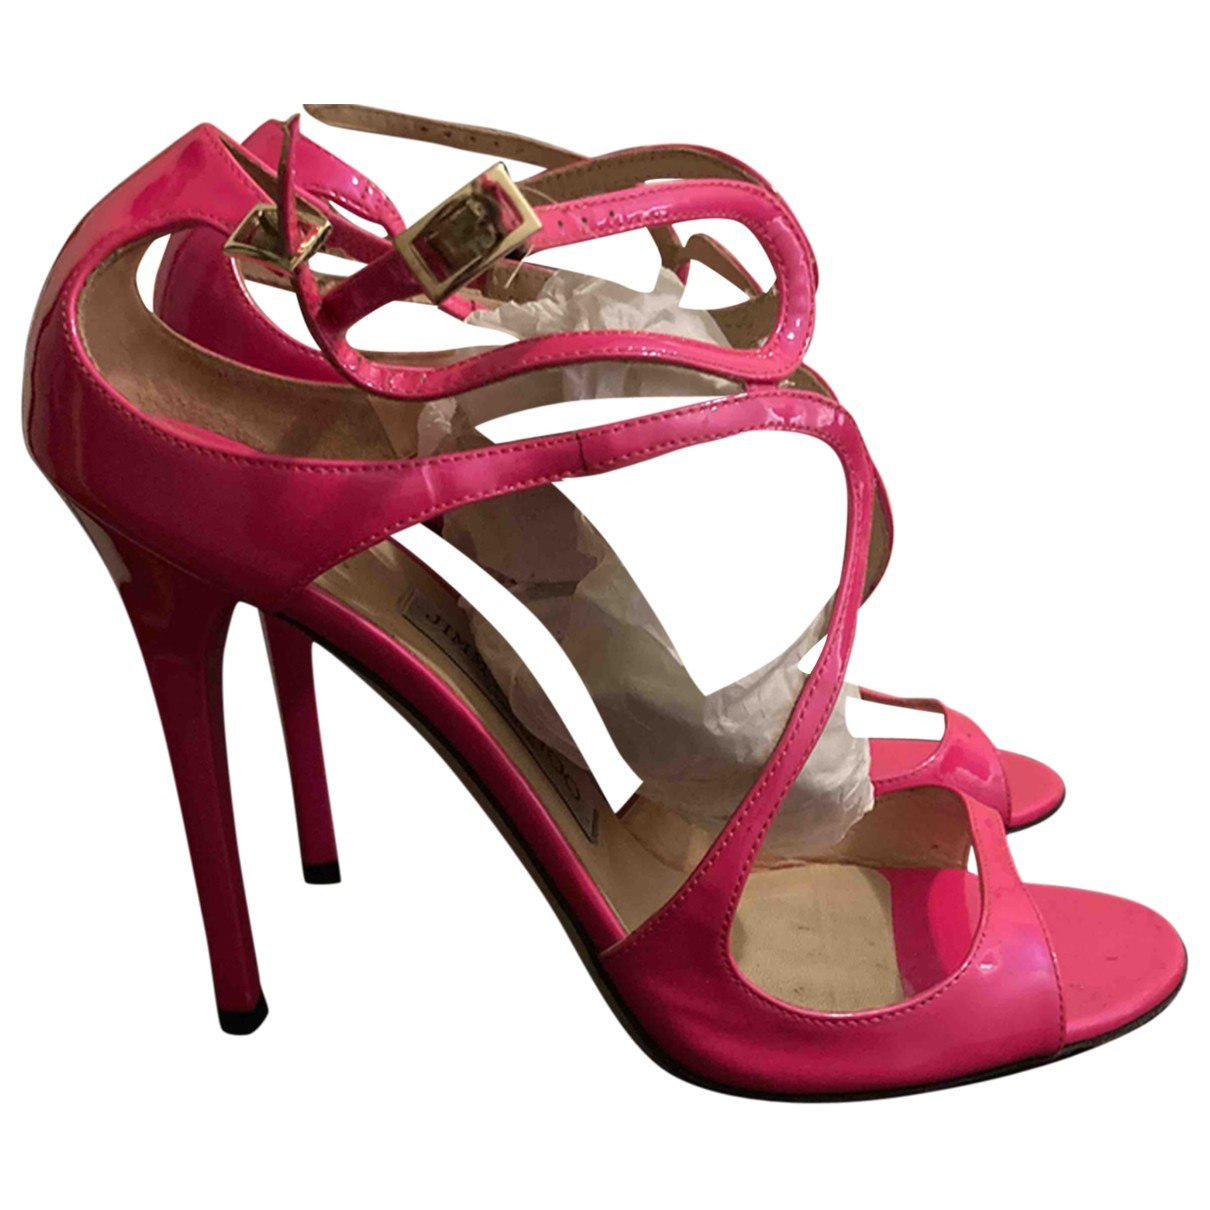 Jimmy Choo Lance Pink Patent leather Sandals for Women 40.5 EU